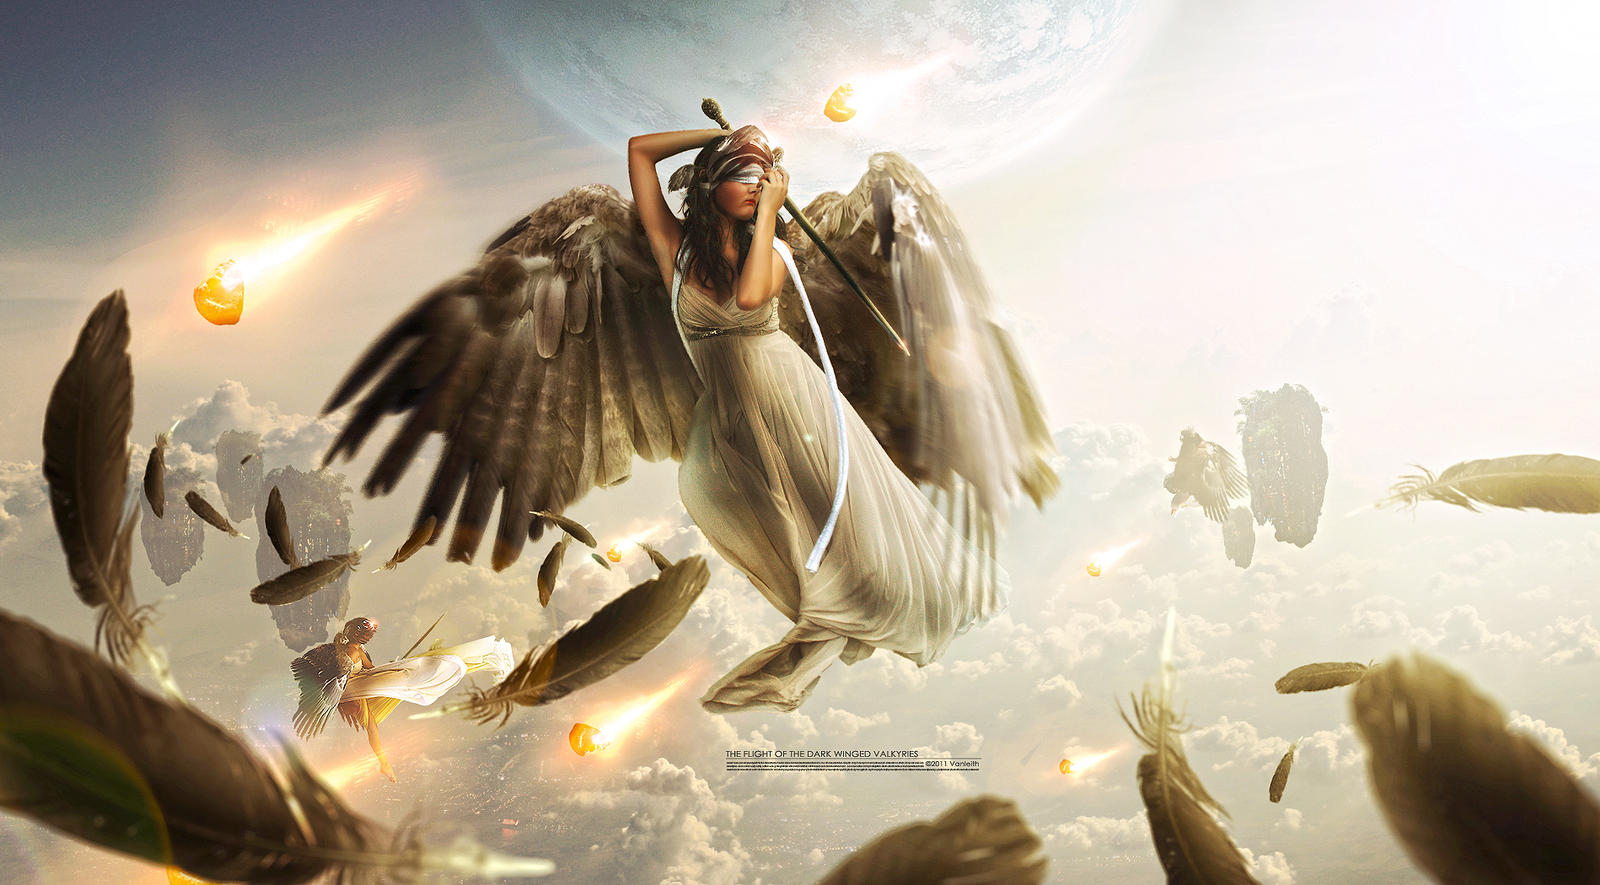 The Flight of the Dark Winged Valkyries by Vanleith